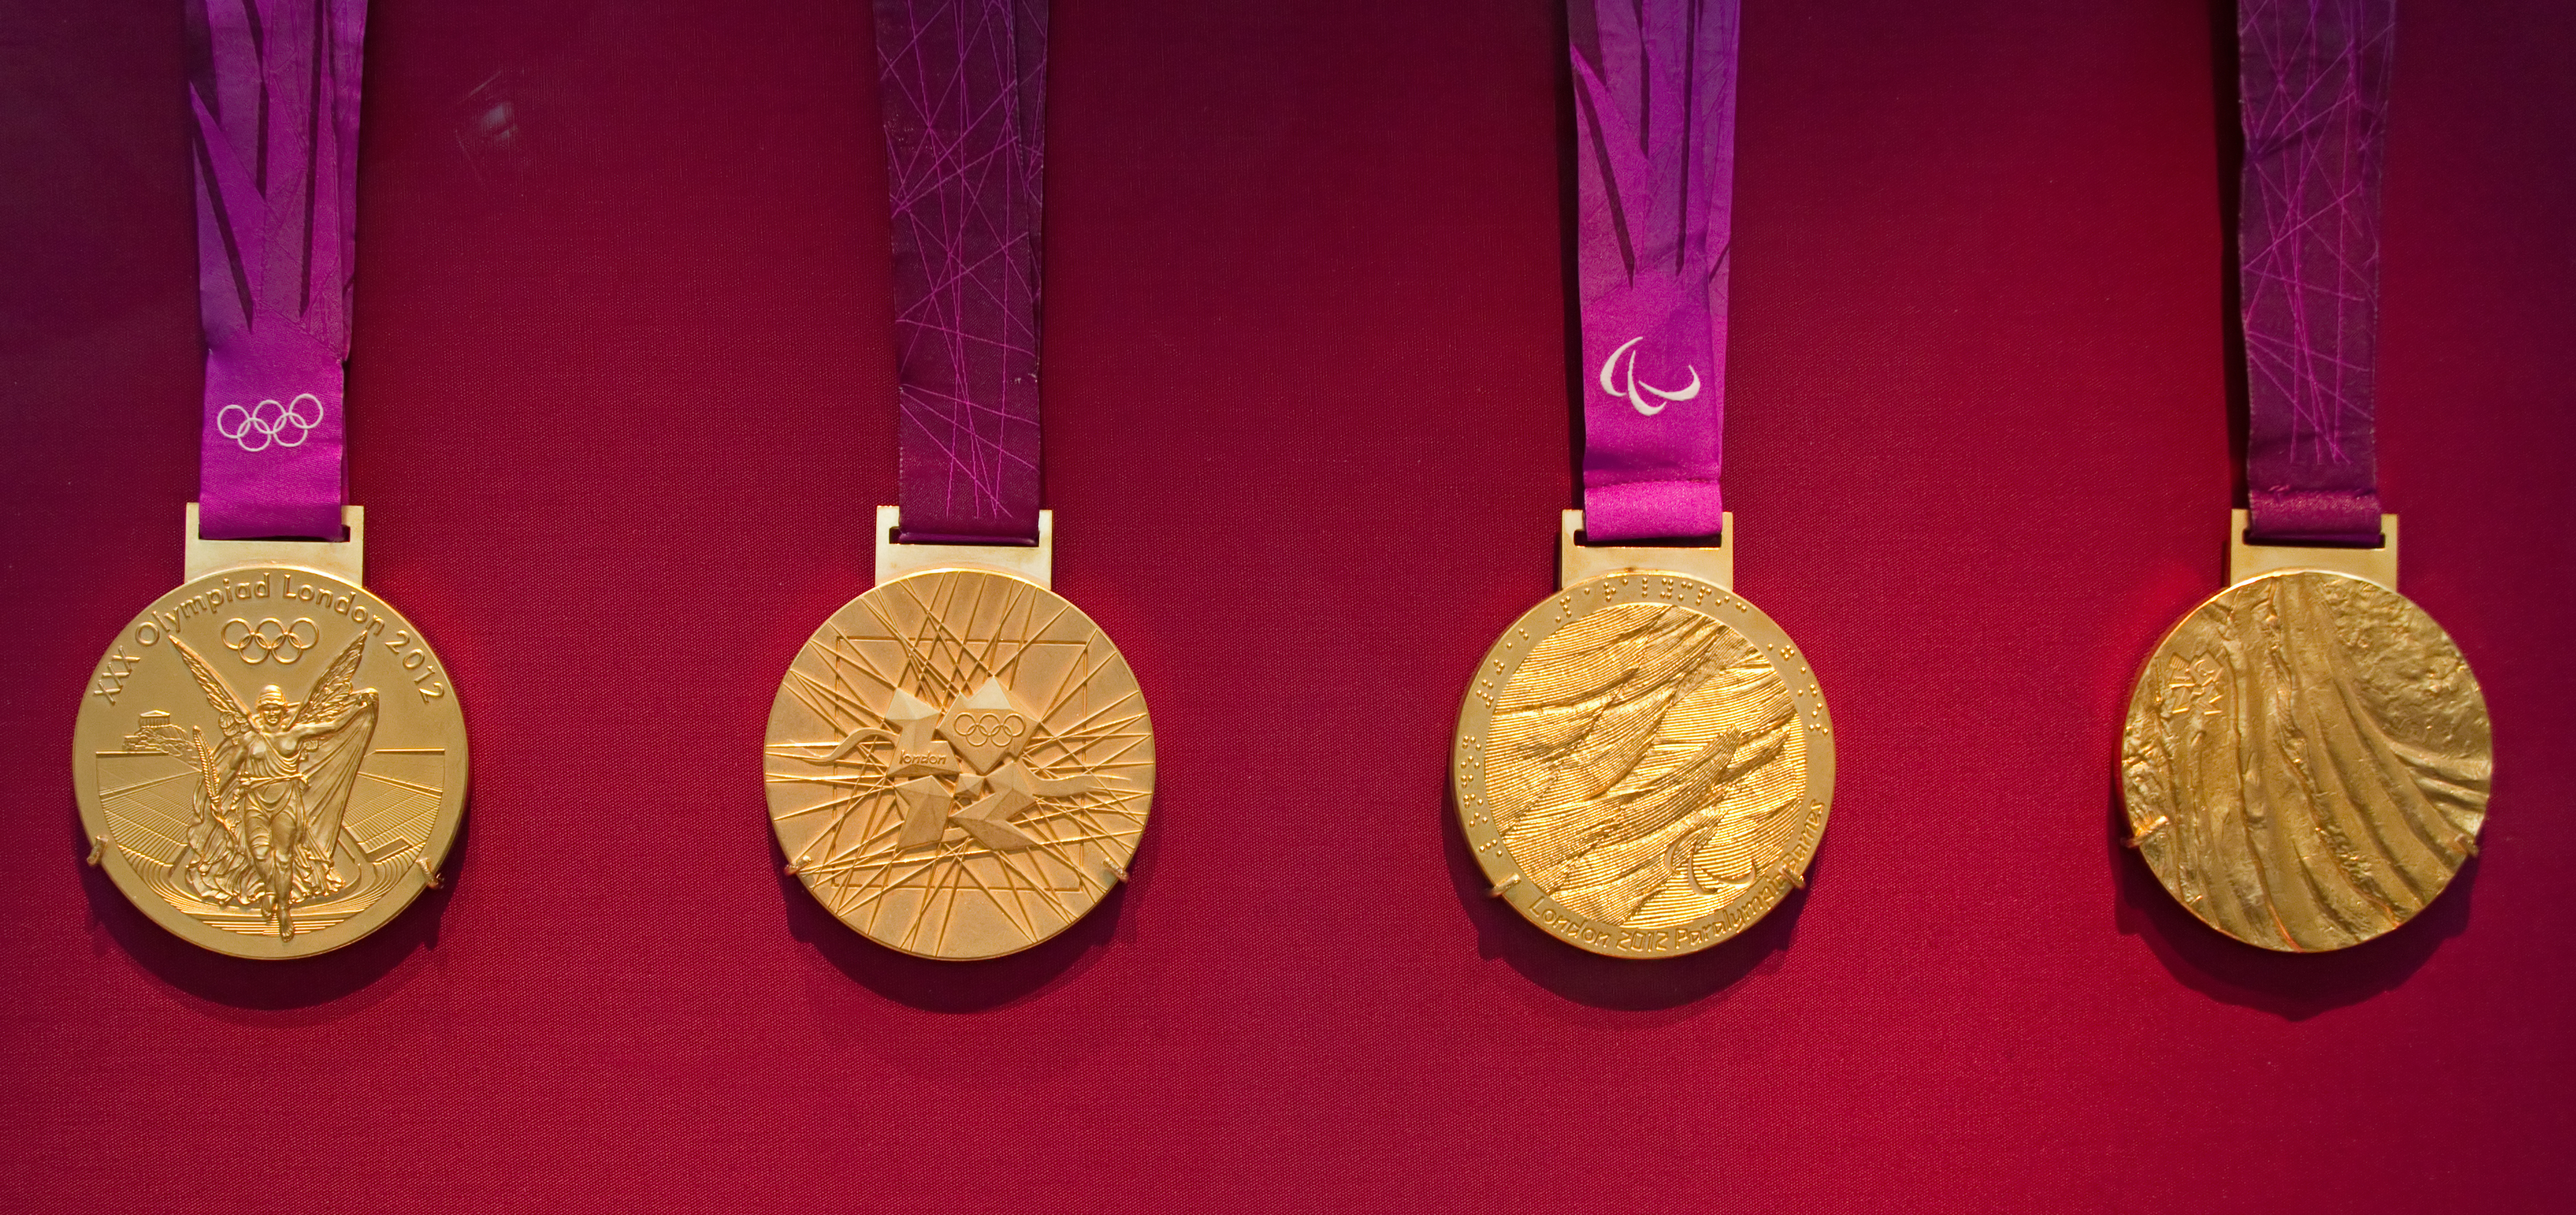 3764x1776 - Olympic Gold Metal Wallpapers 6